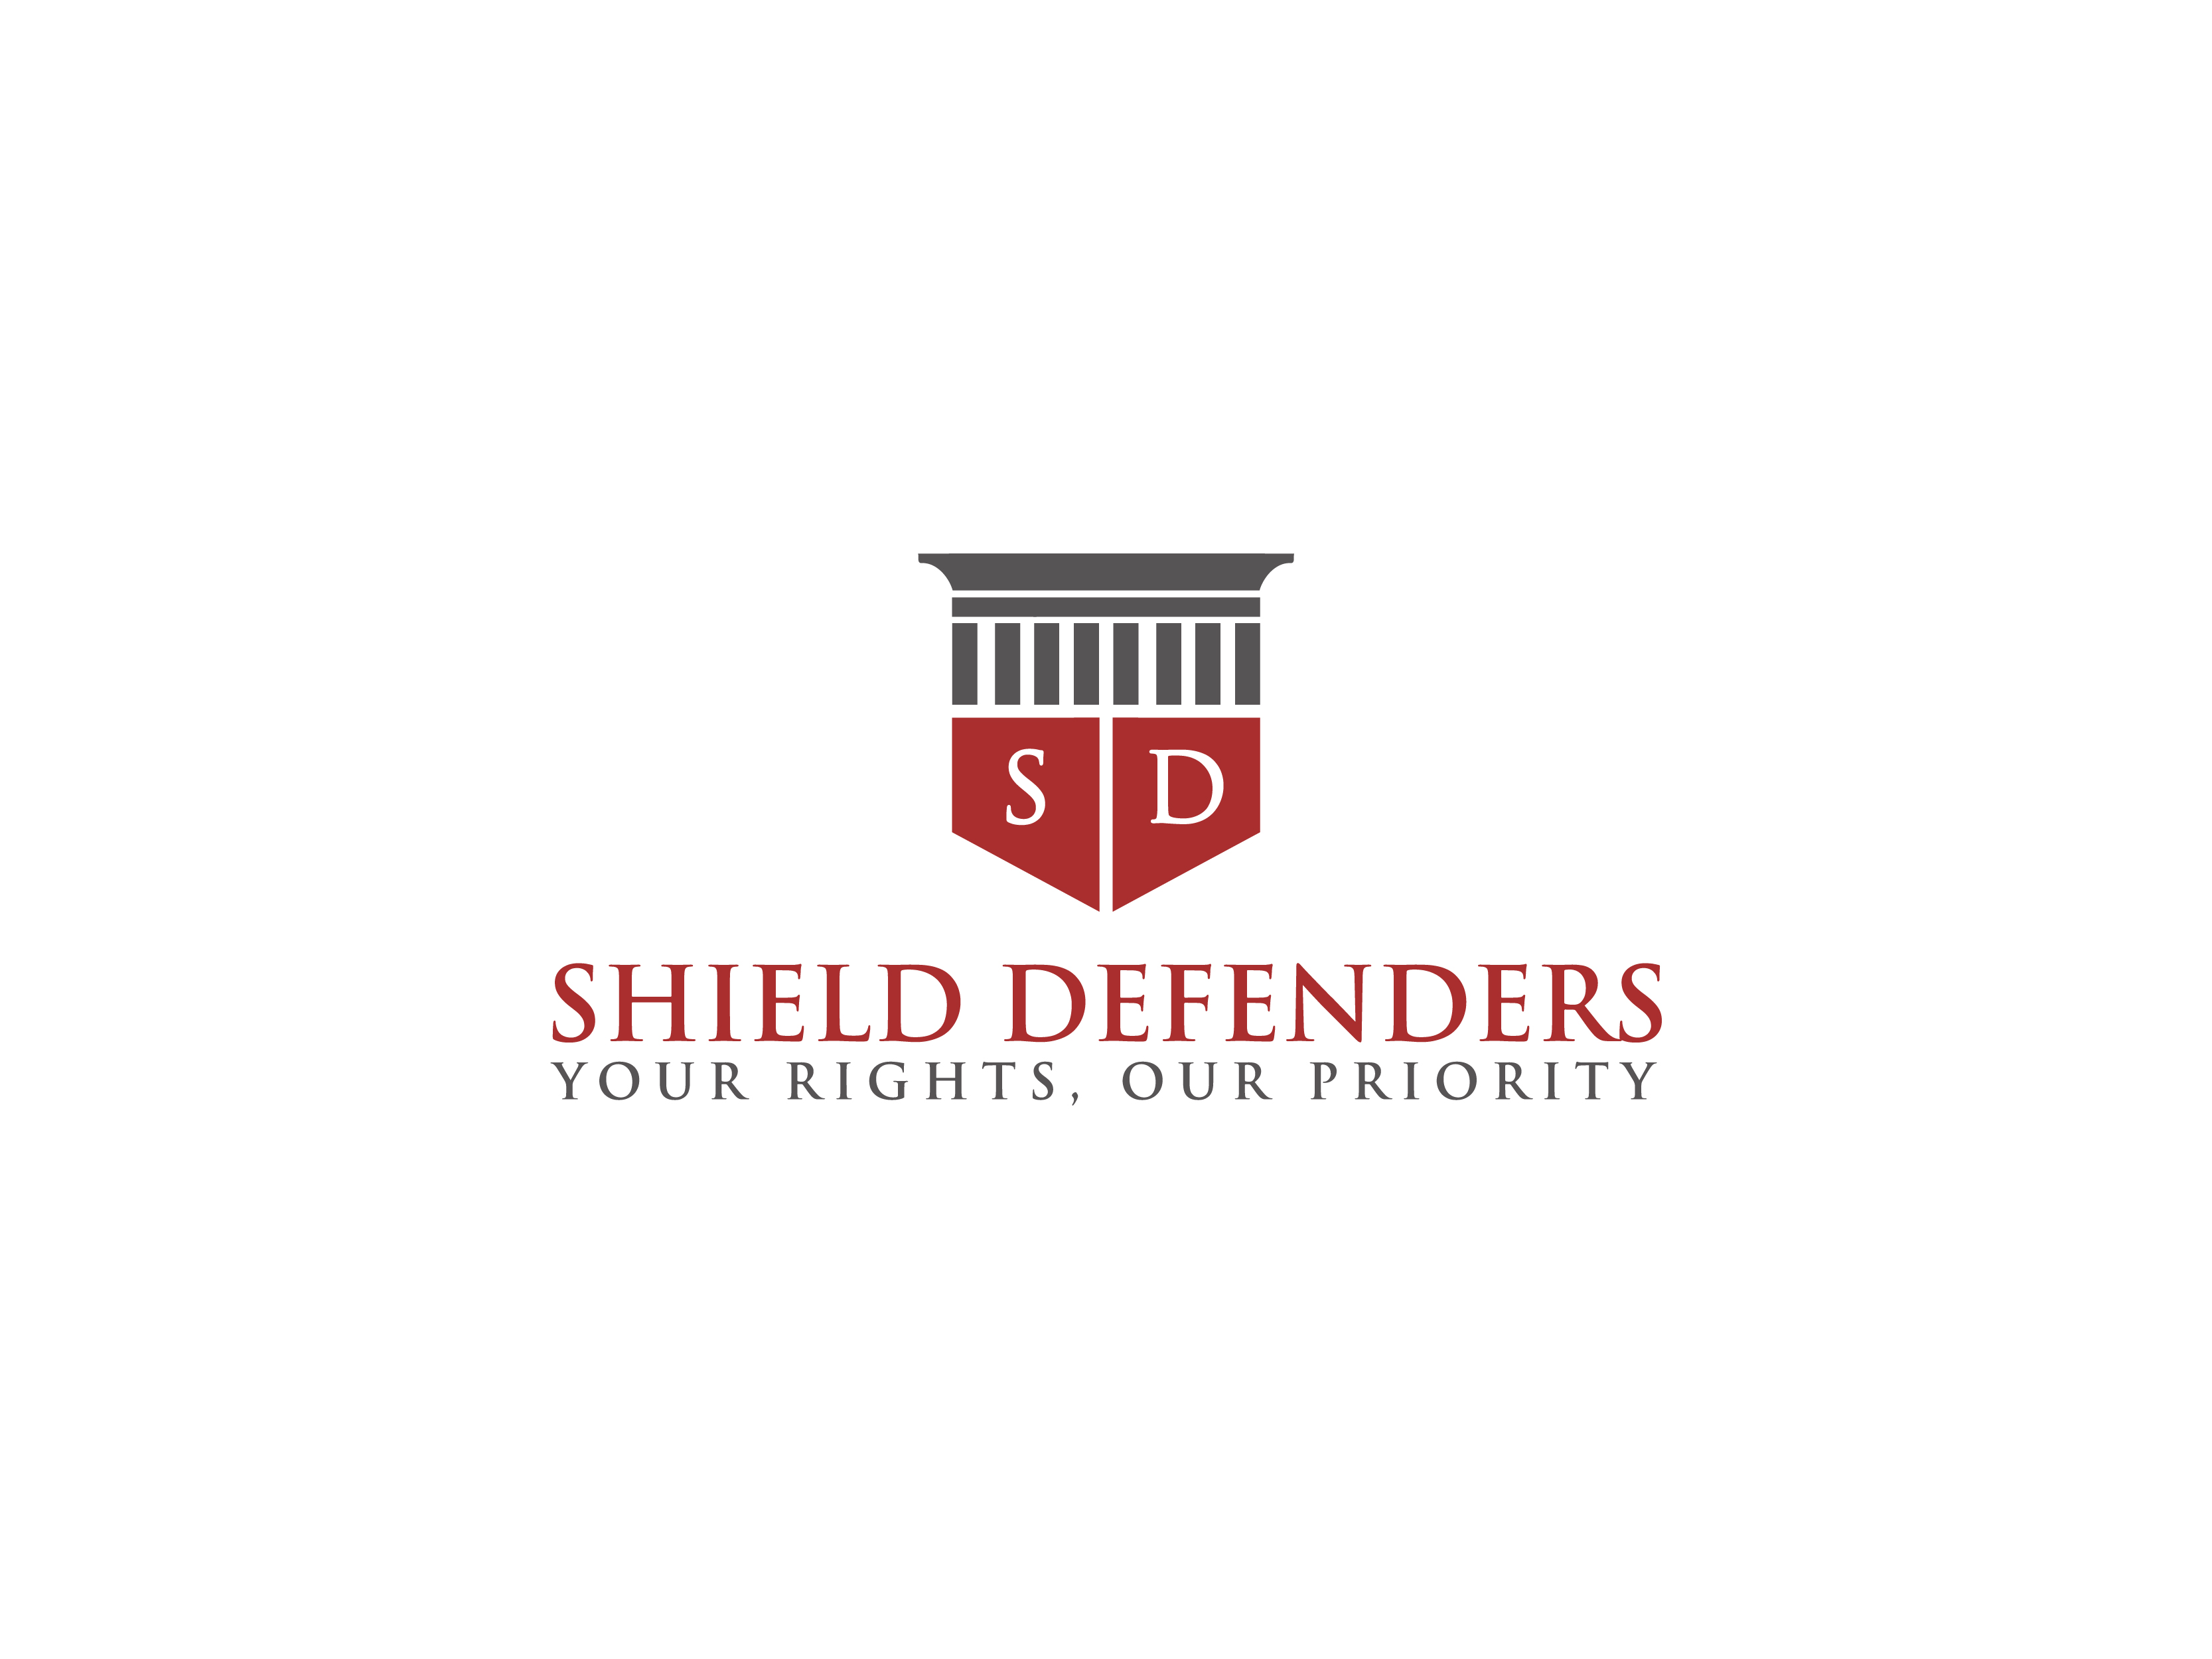 Shield Defenders Launches to Fight and Support for Fair Legal Justice System